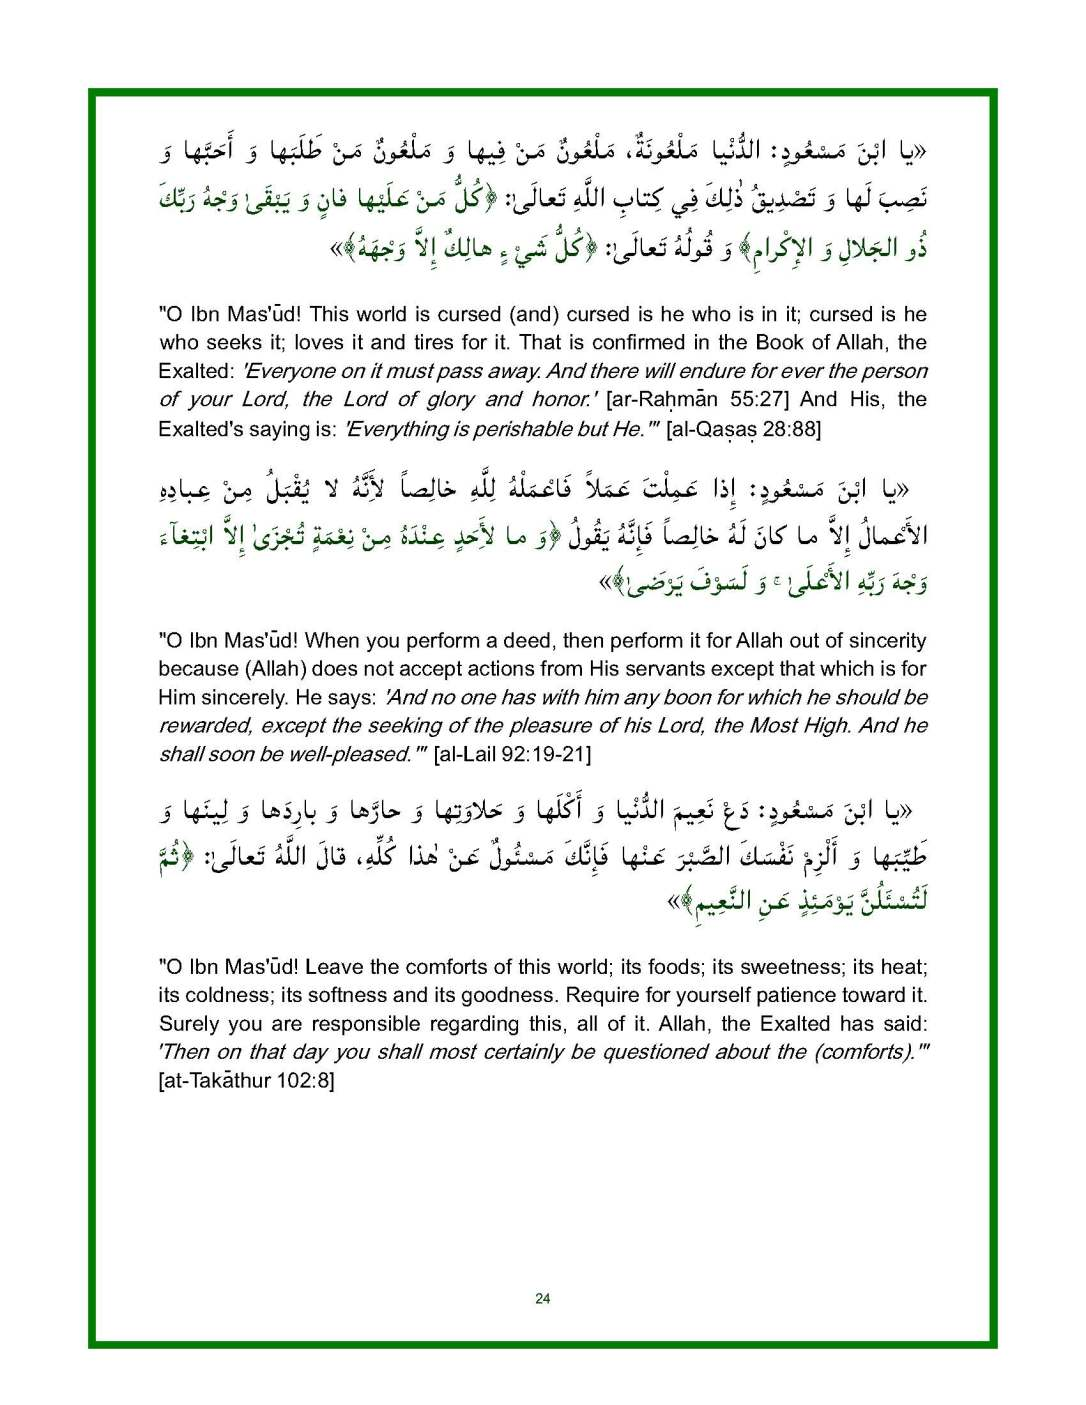 Spiritual-Advice-of-the-Messenger-of-Allah-for-Ibn-Masud-unlocked_Page_24